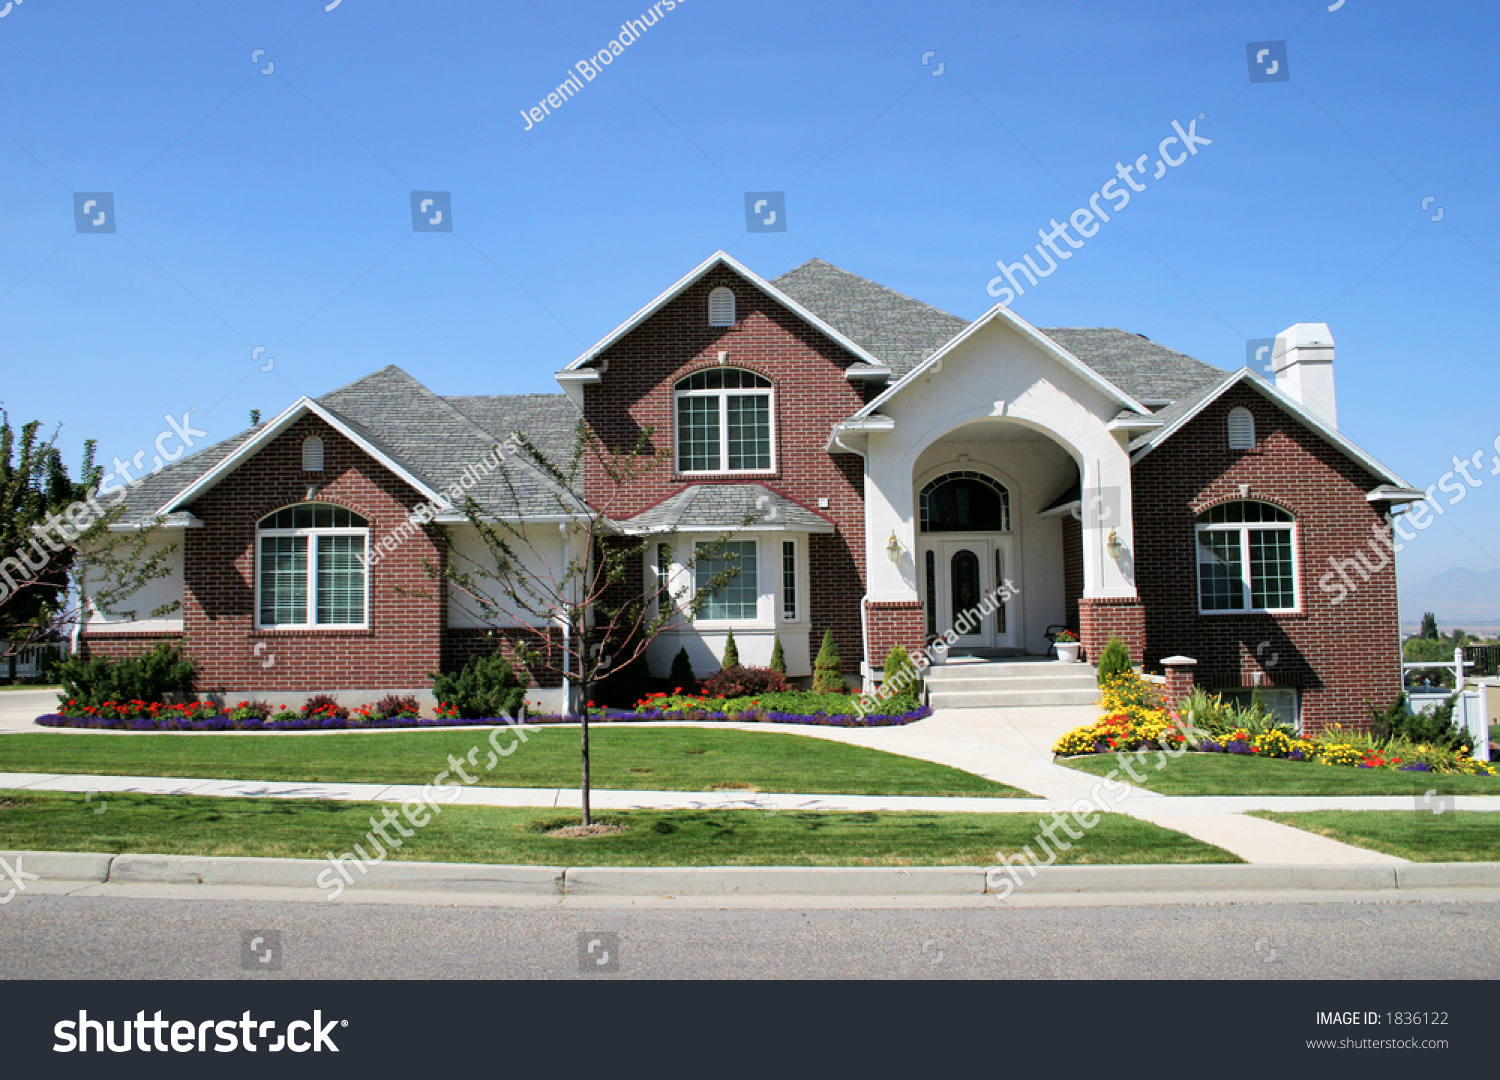 American home stock photo 1836122 shutterstock for Americanhome com